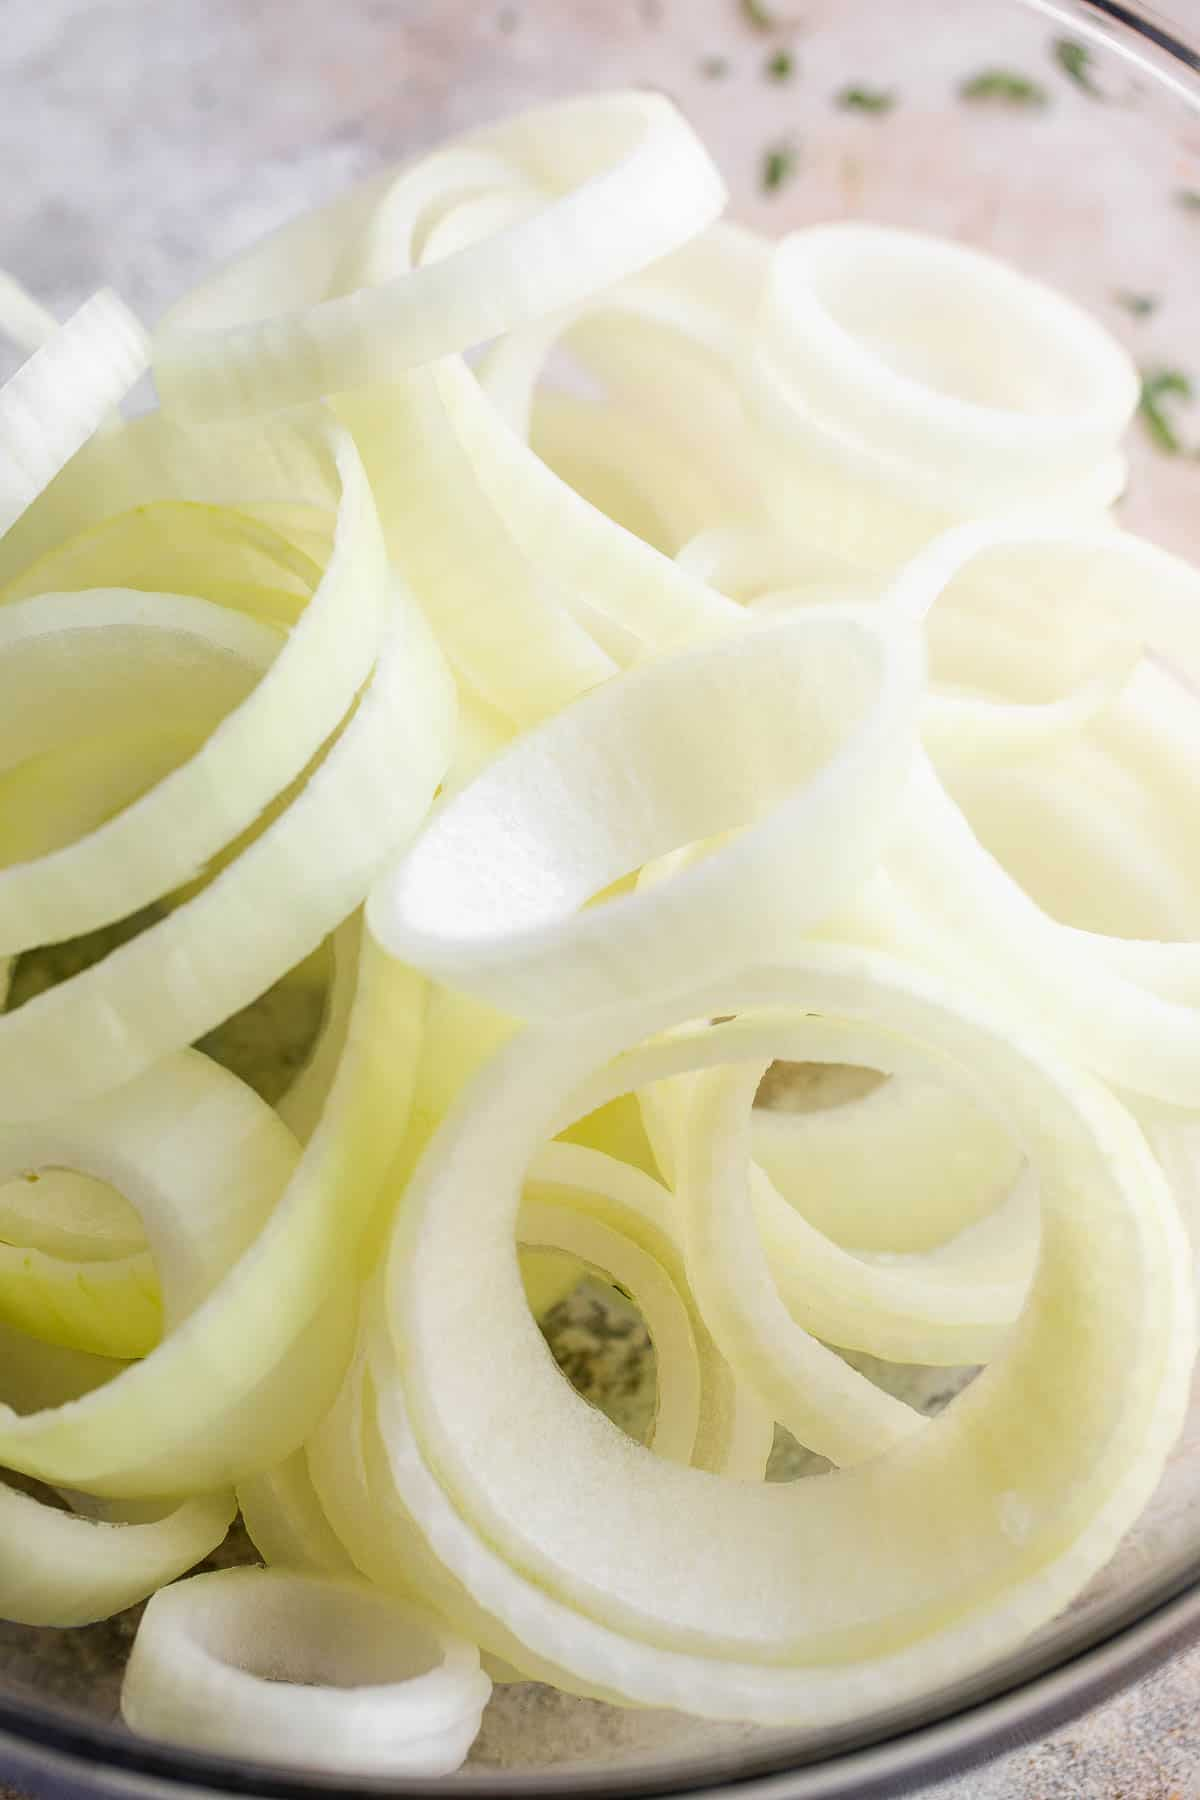 raw onions cut into thick rings